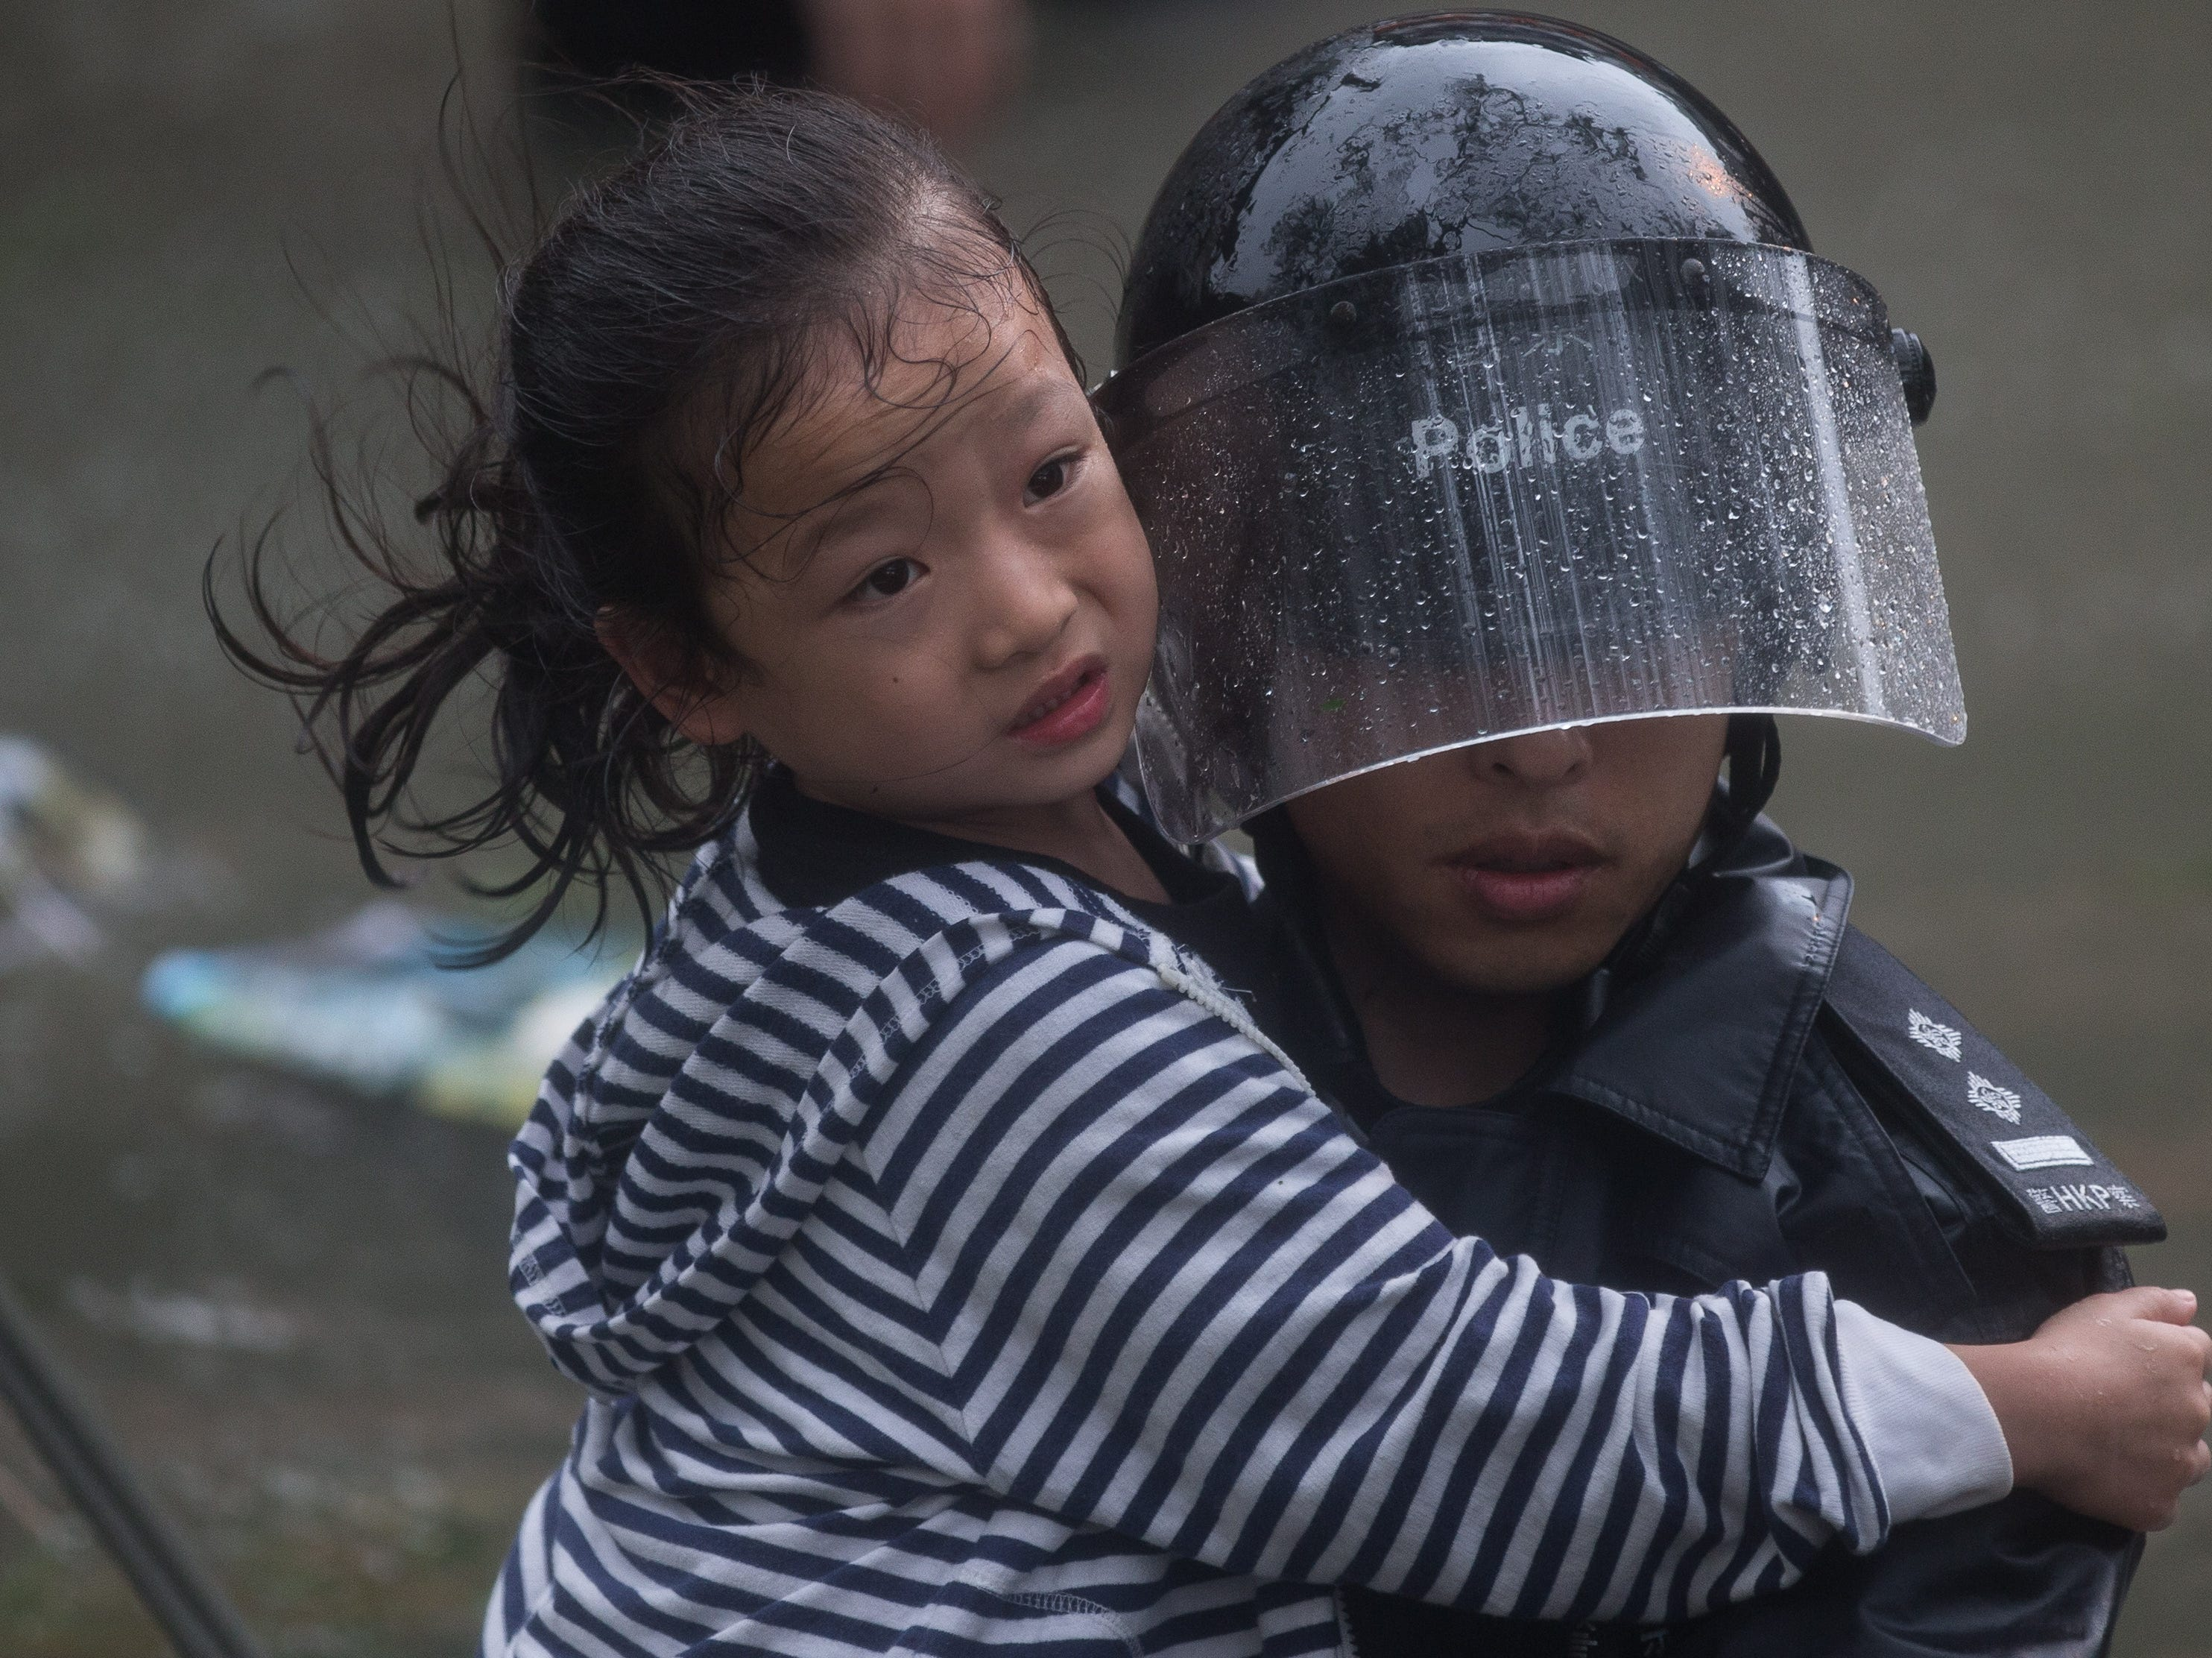 A police officer rescues a child from a flooded street during Typhoon Mangkhut in Lei Yu Mun, Hong Kong, China onSept. 16, 2018.